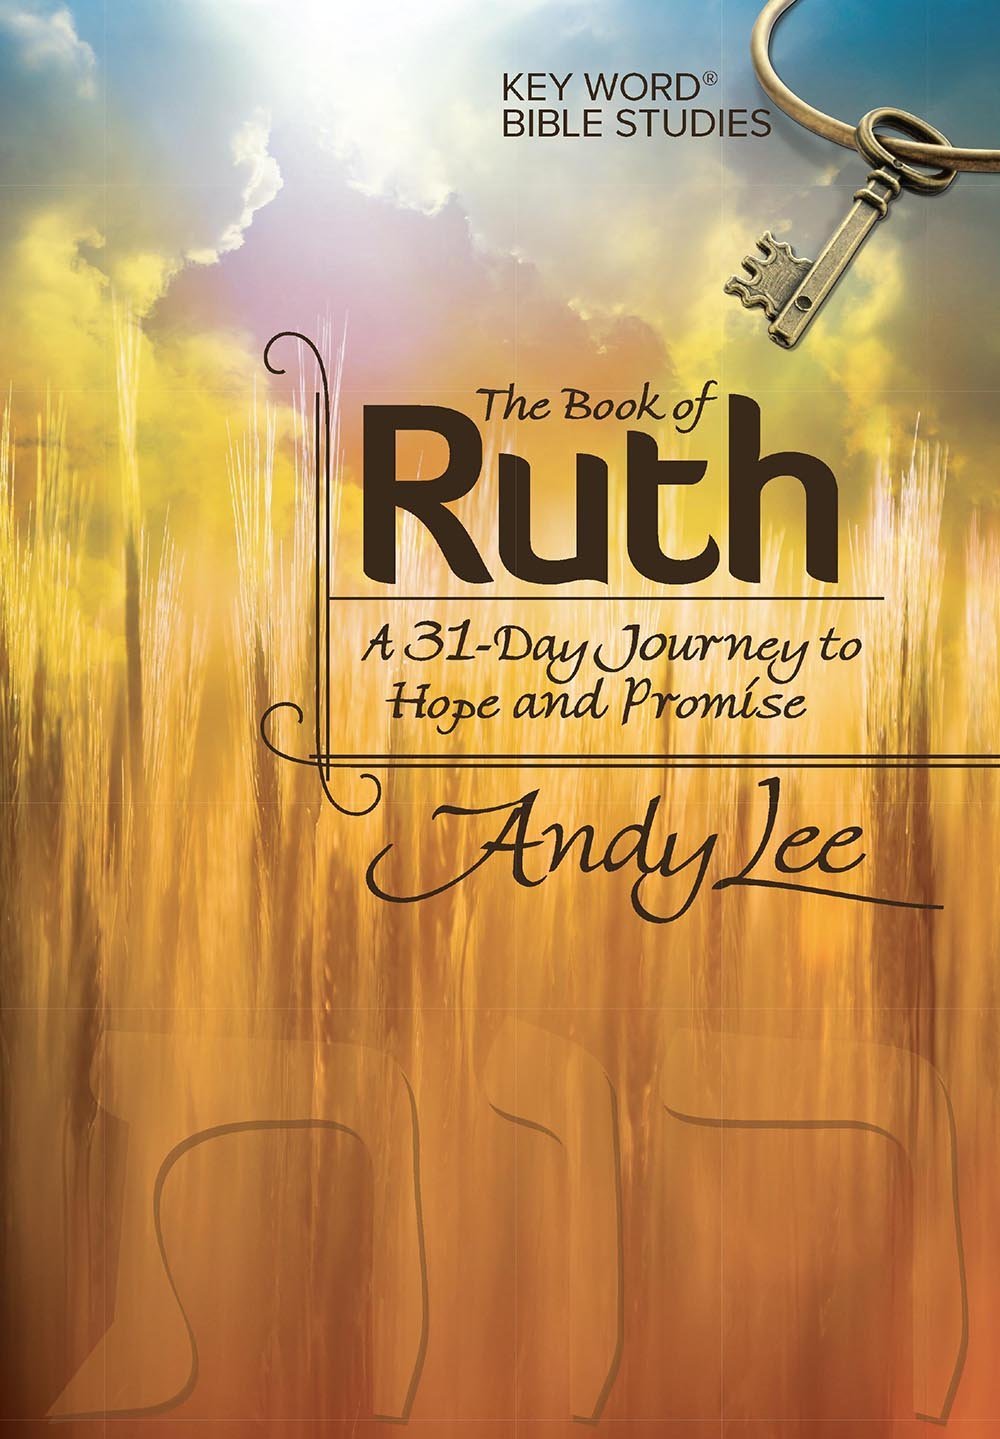 The Book Of Ruth Key Word Bible Study Key Word Bible Studies